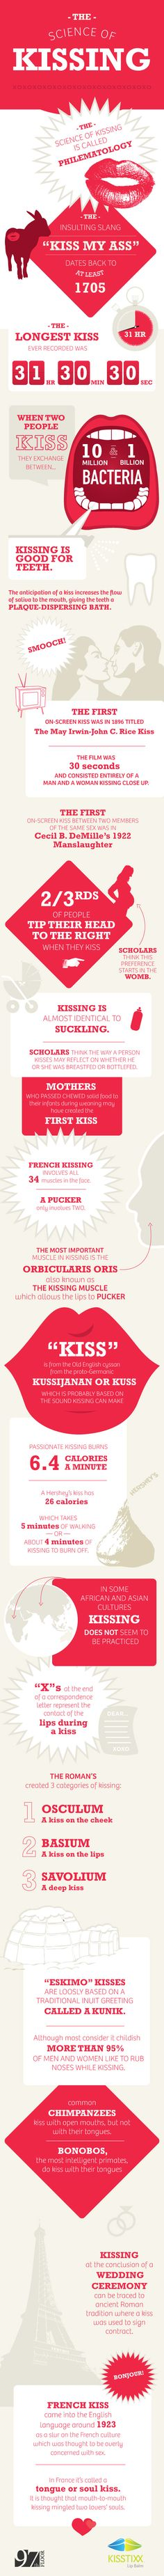 The Science of Kissing | Kisstixx